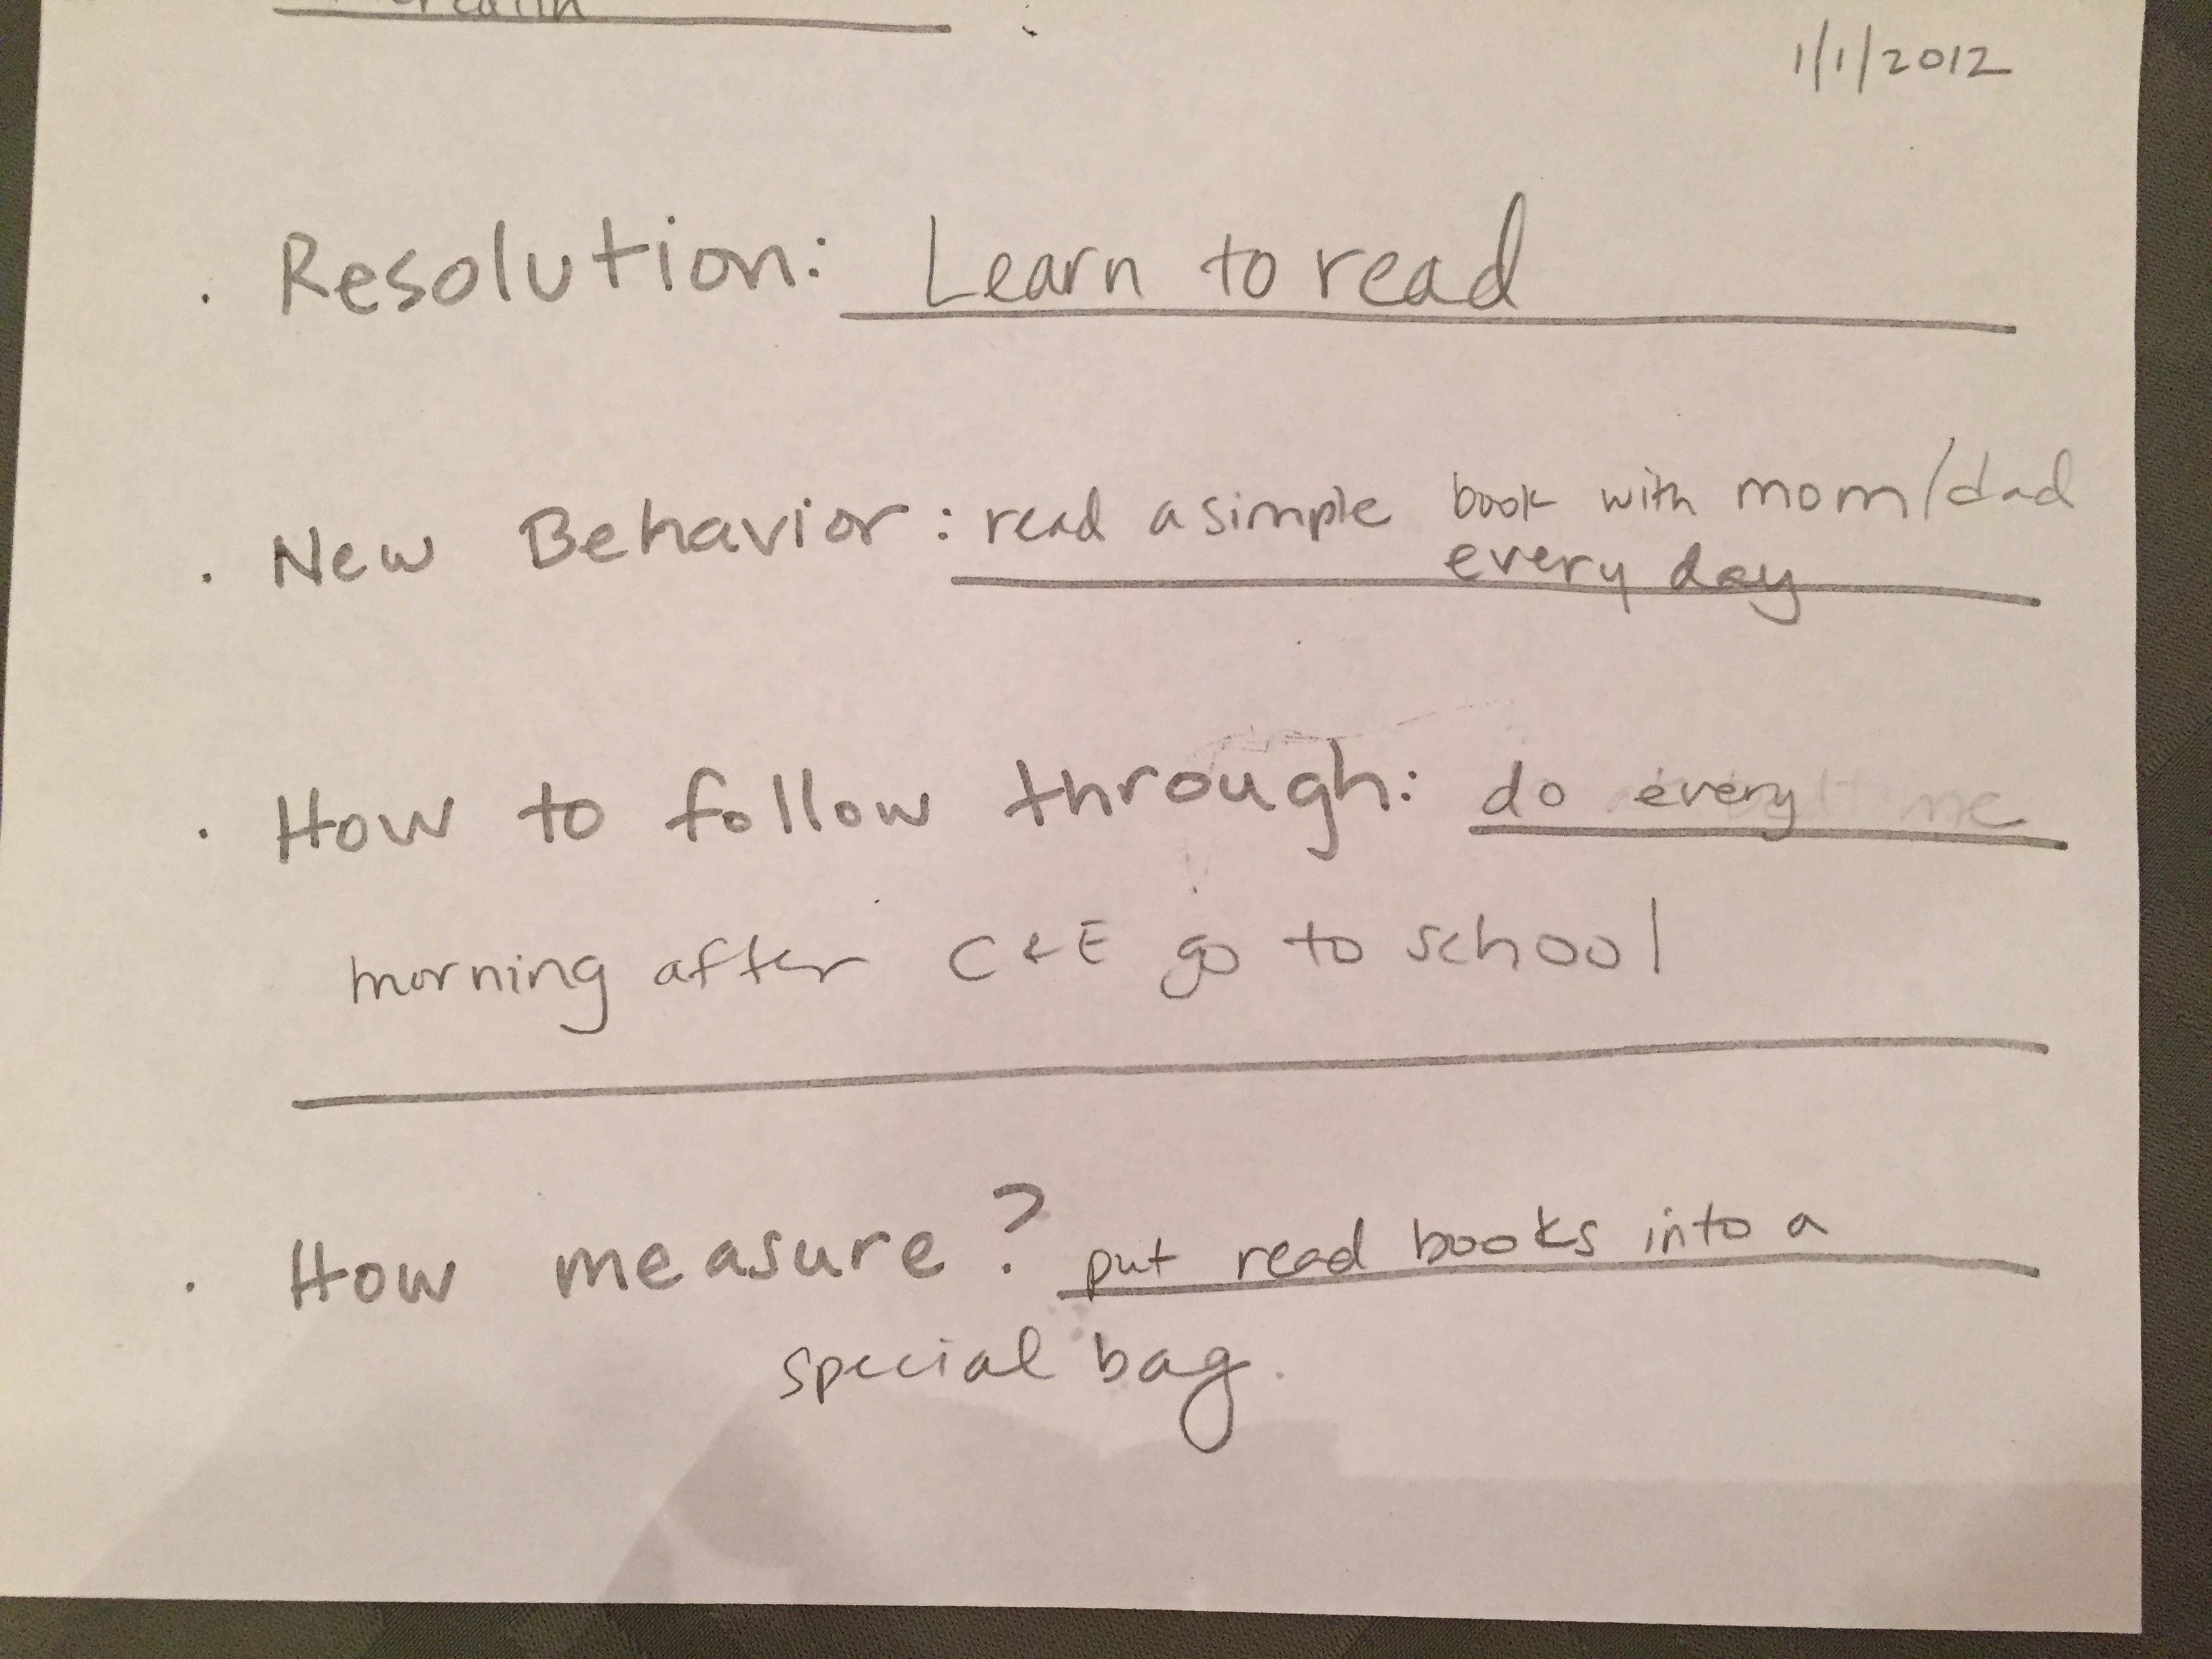 MESB 2012 Resolution